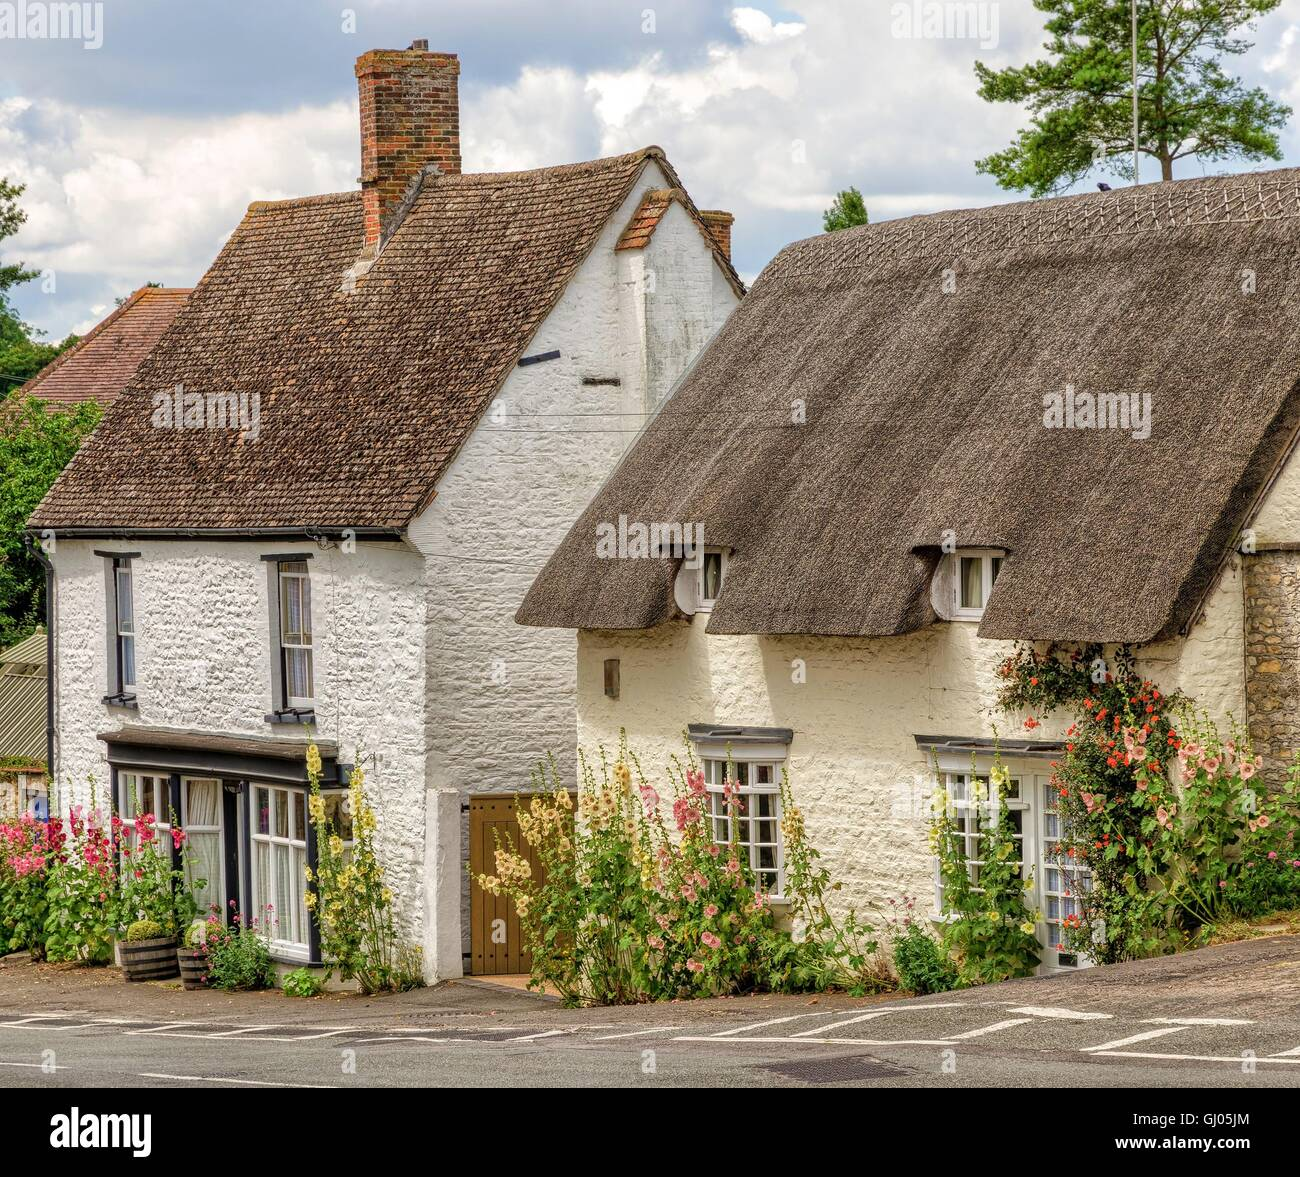 Cottages in Great Milton village, Oxfordshire, England - Stock Image